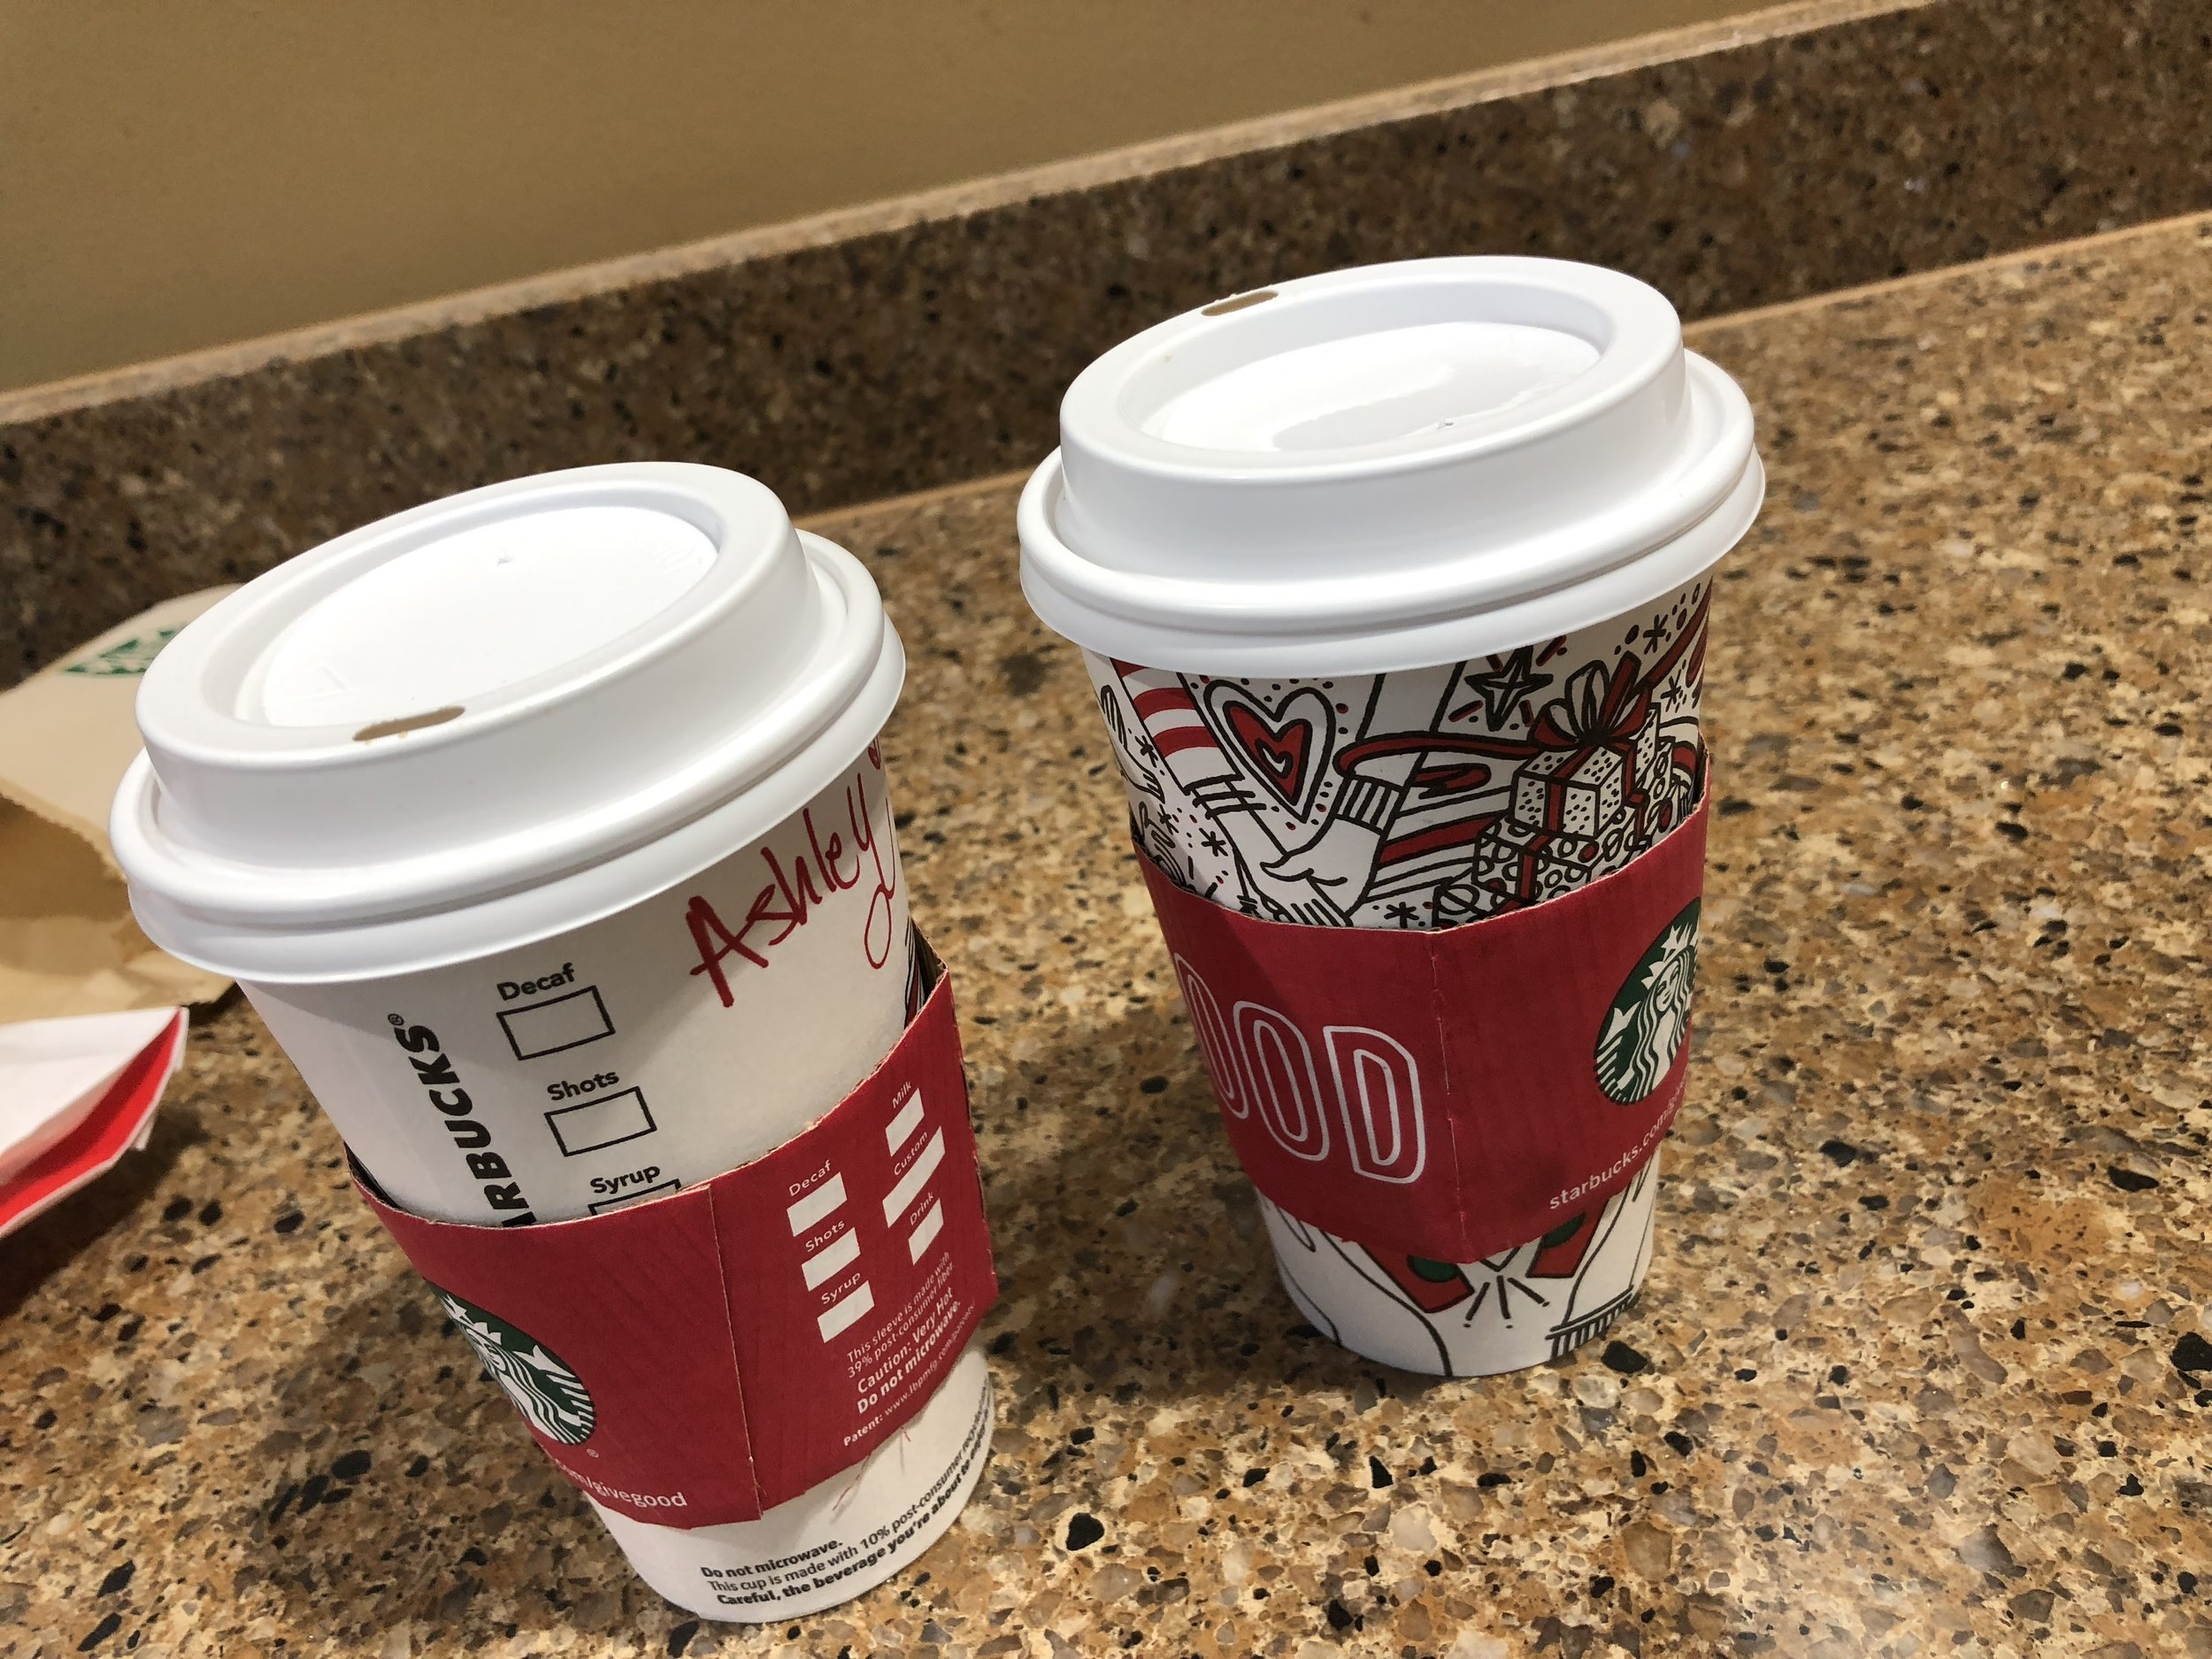 post-race coffee - it was so cold out there, we needed something warm